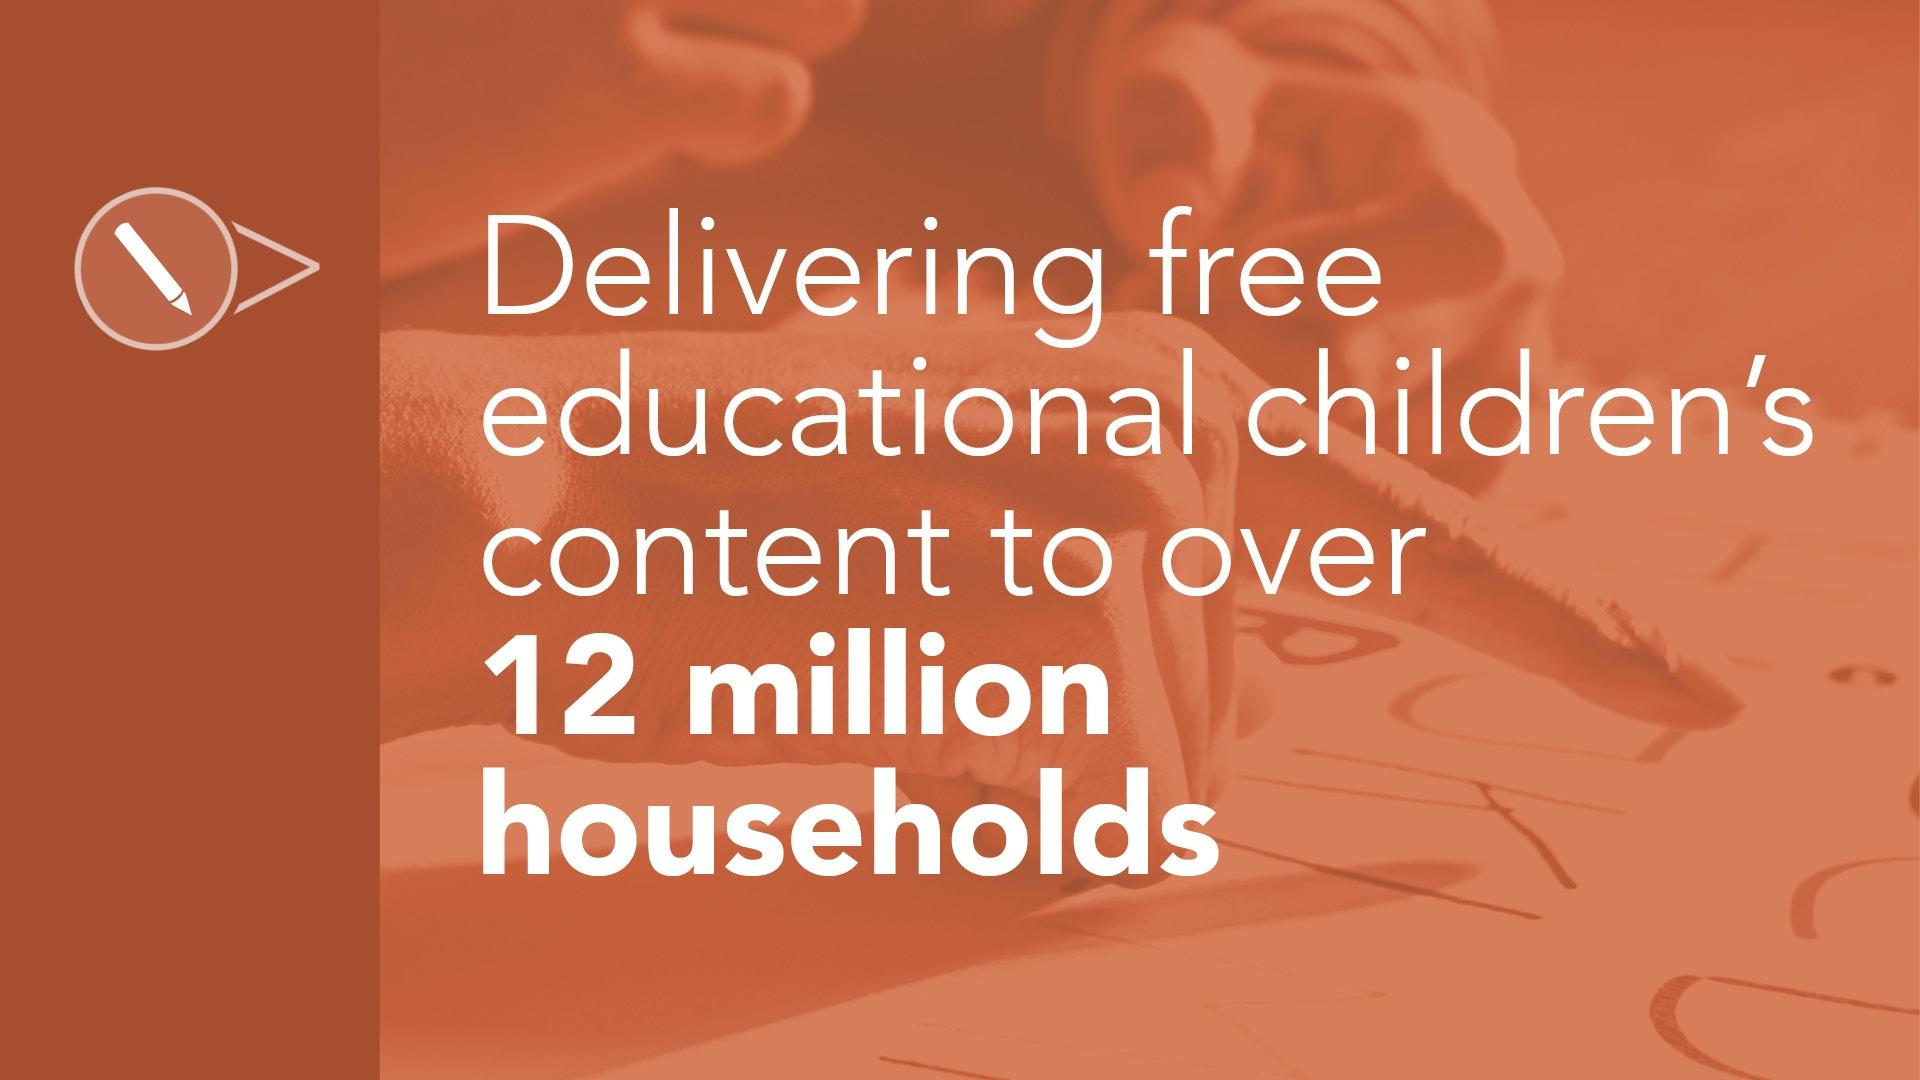 Delivering free educational children's content to over 12 million households